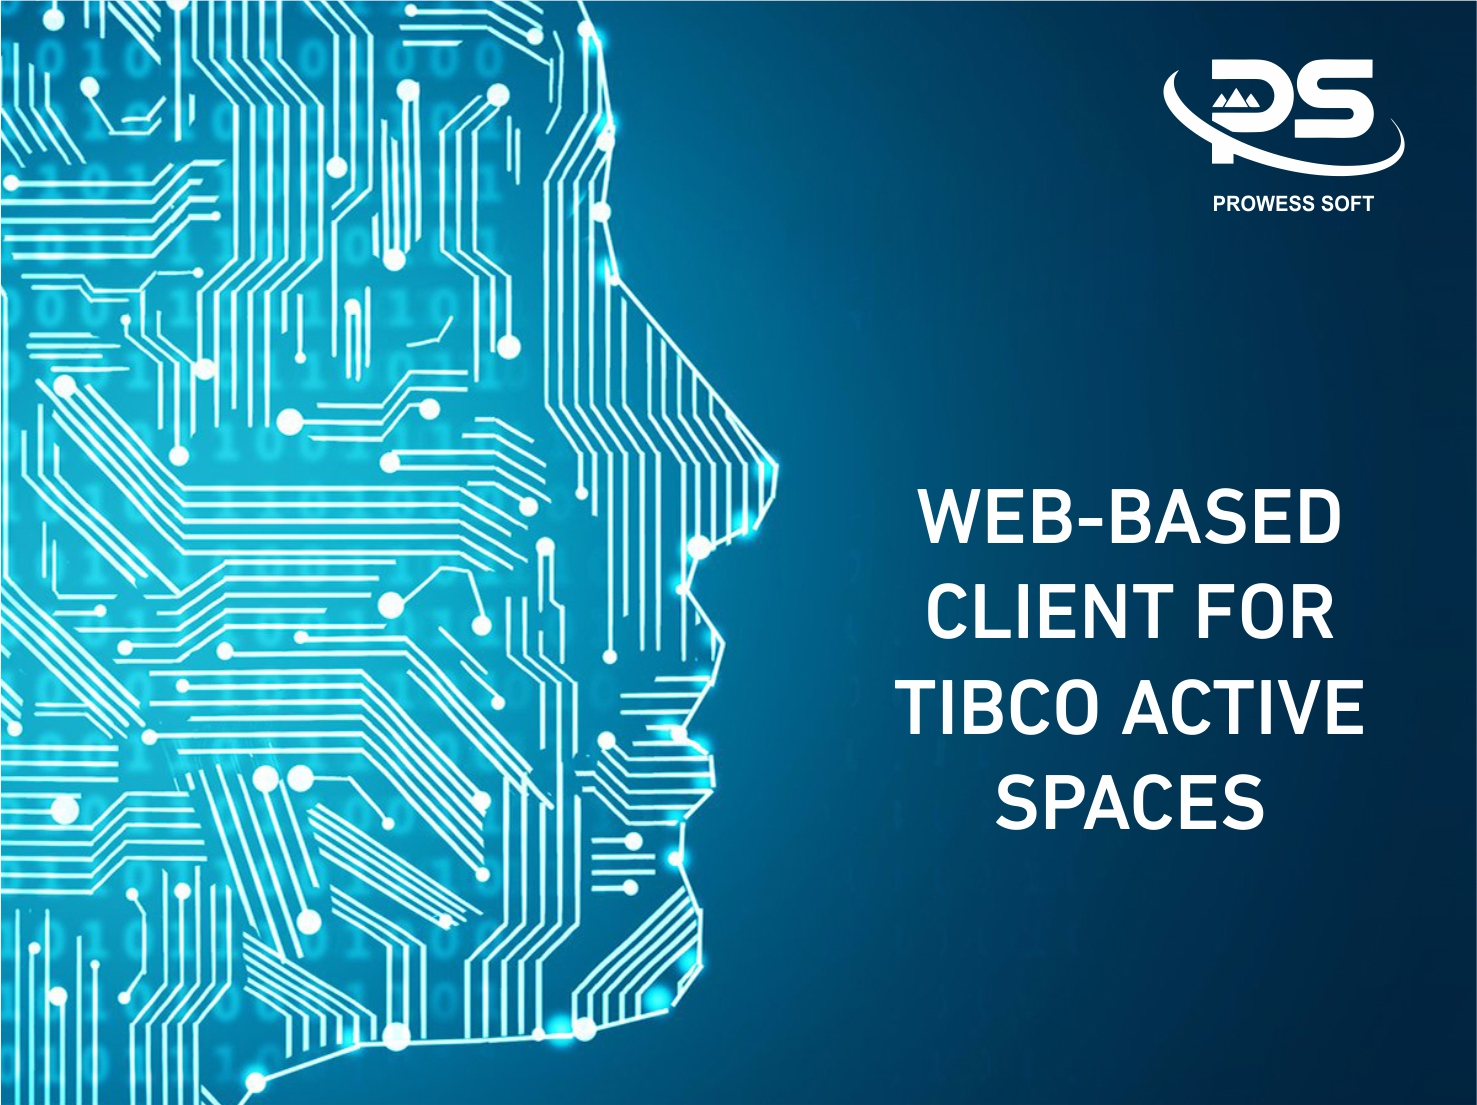 Image Of WEB-BASED CLIENT FOR TIBCO ACTIVE SPACES